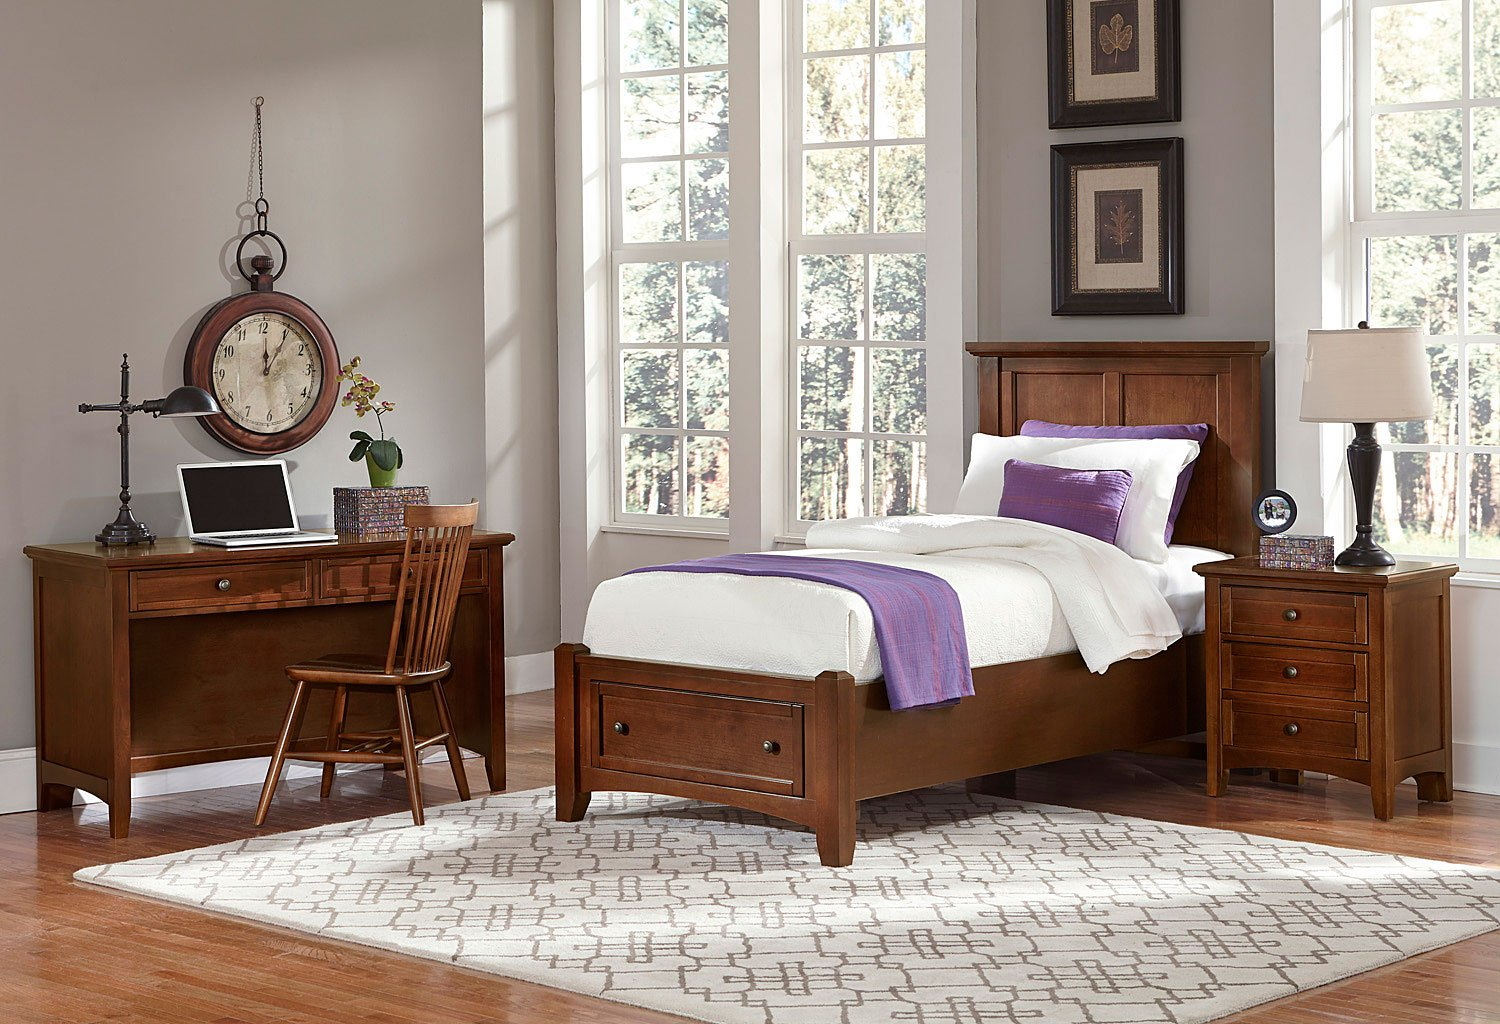 Bonanza youth mansion storage bedroom set cherry vaughan - Youth bedroom furniture with storage ...